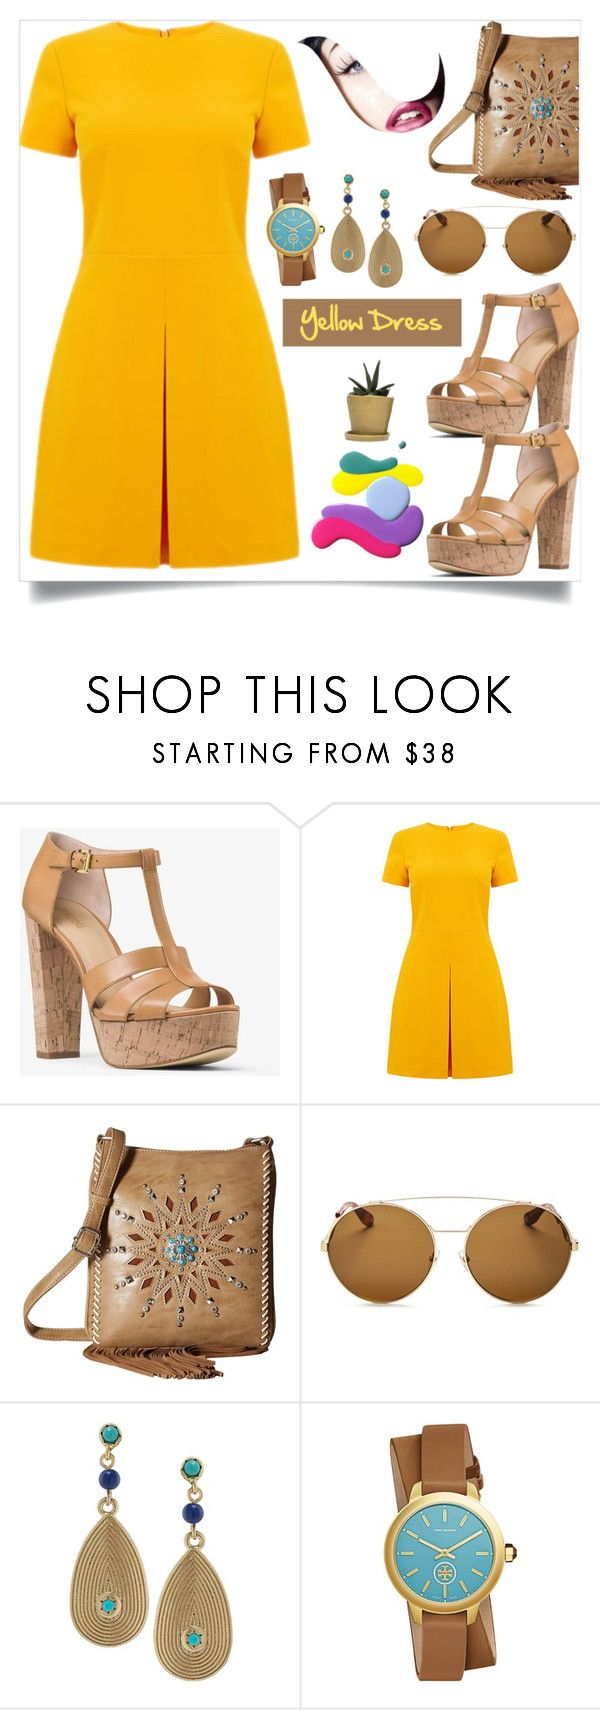 """""""Yellow dress"""" by spica-caracterielle ❤ liked on Polyvore featuring MICHAEL Michael Kors, Warehouse, M&F Western, Givenchy, Lauren Ralph Lauren, Tory Burch and yellowdress"""